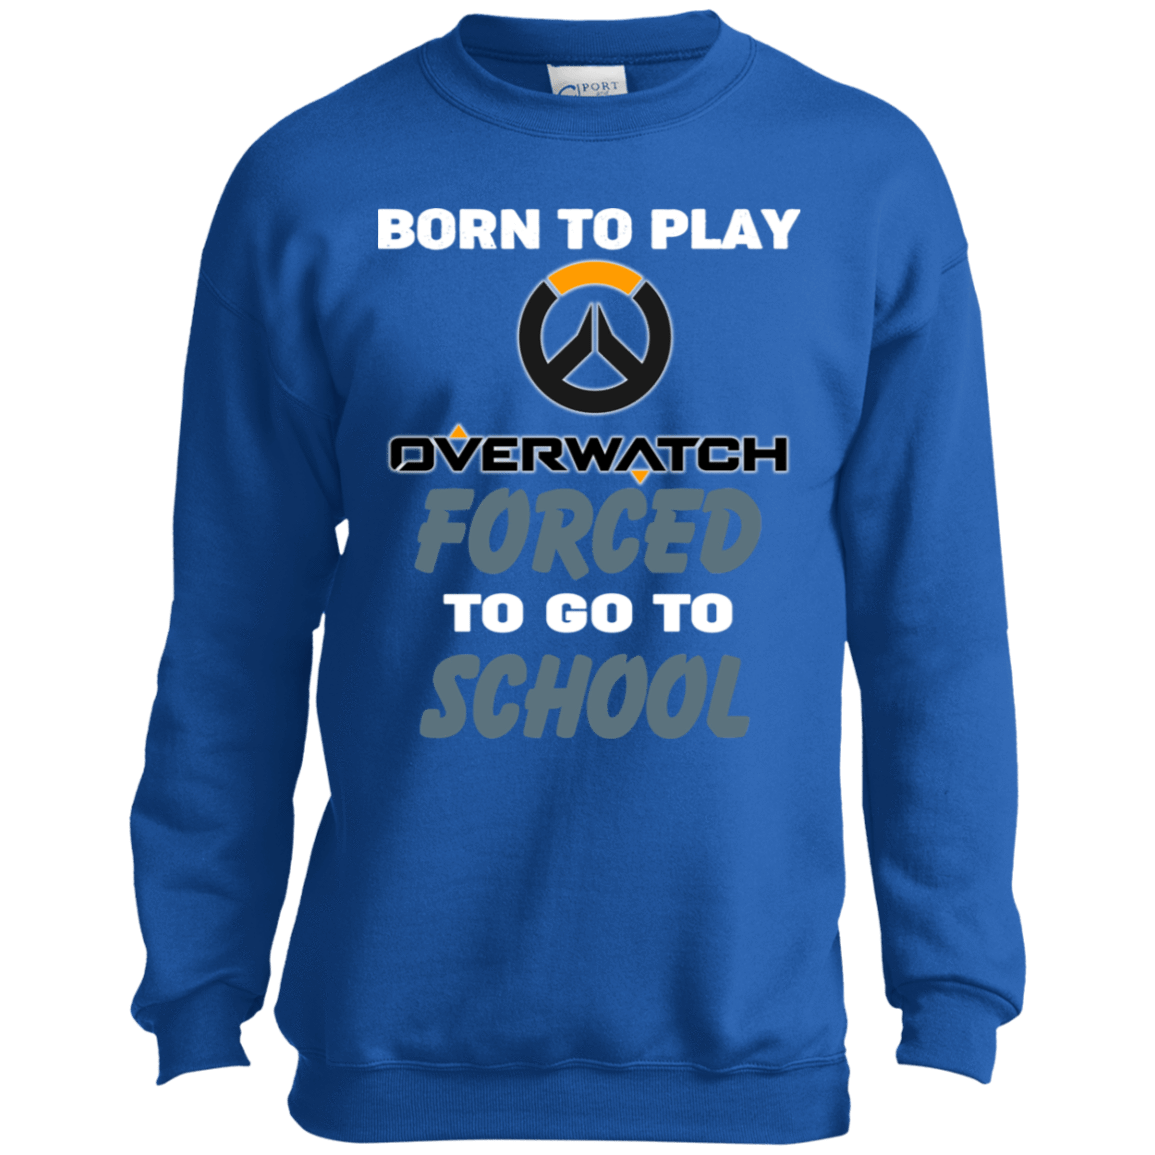 Born To Play Overwatch Forced To Go To School 58-330-74209660-1255 - Tee Ript